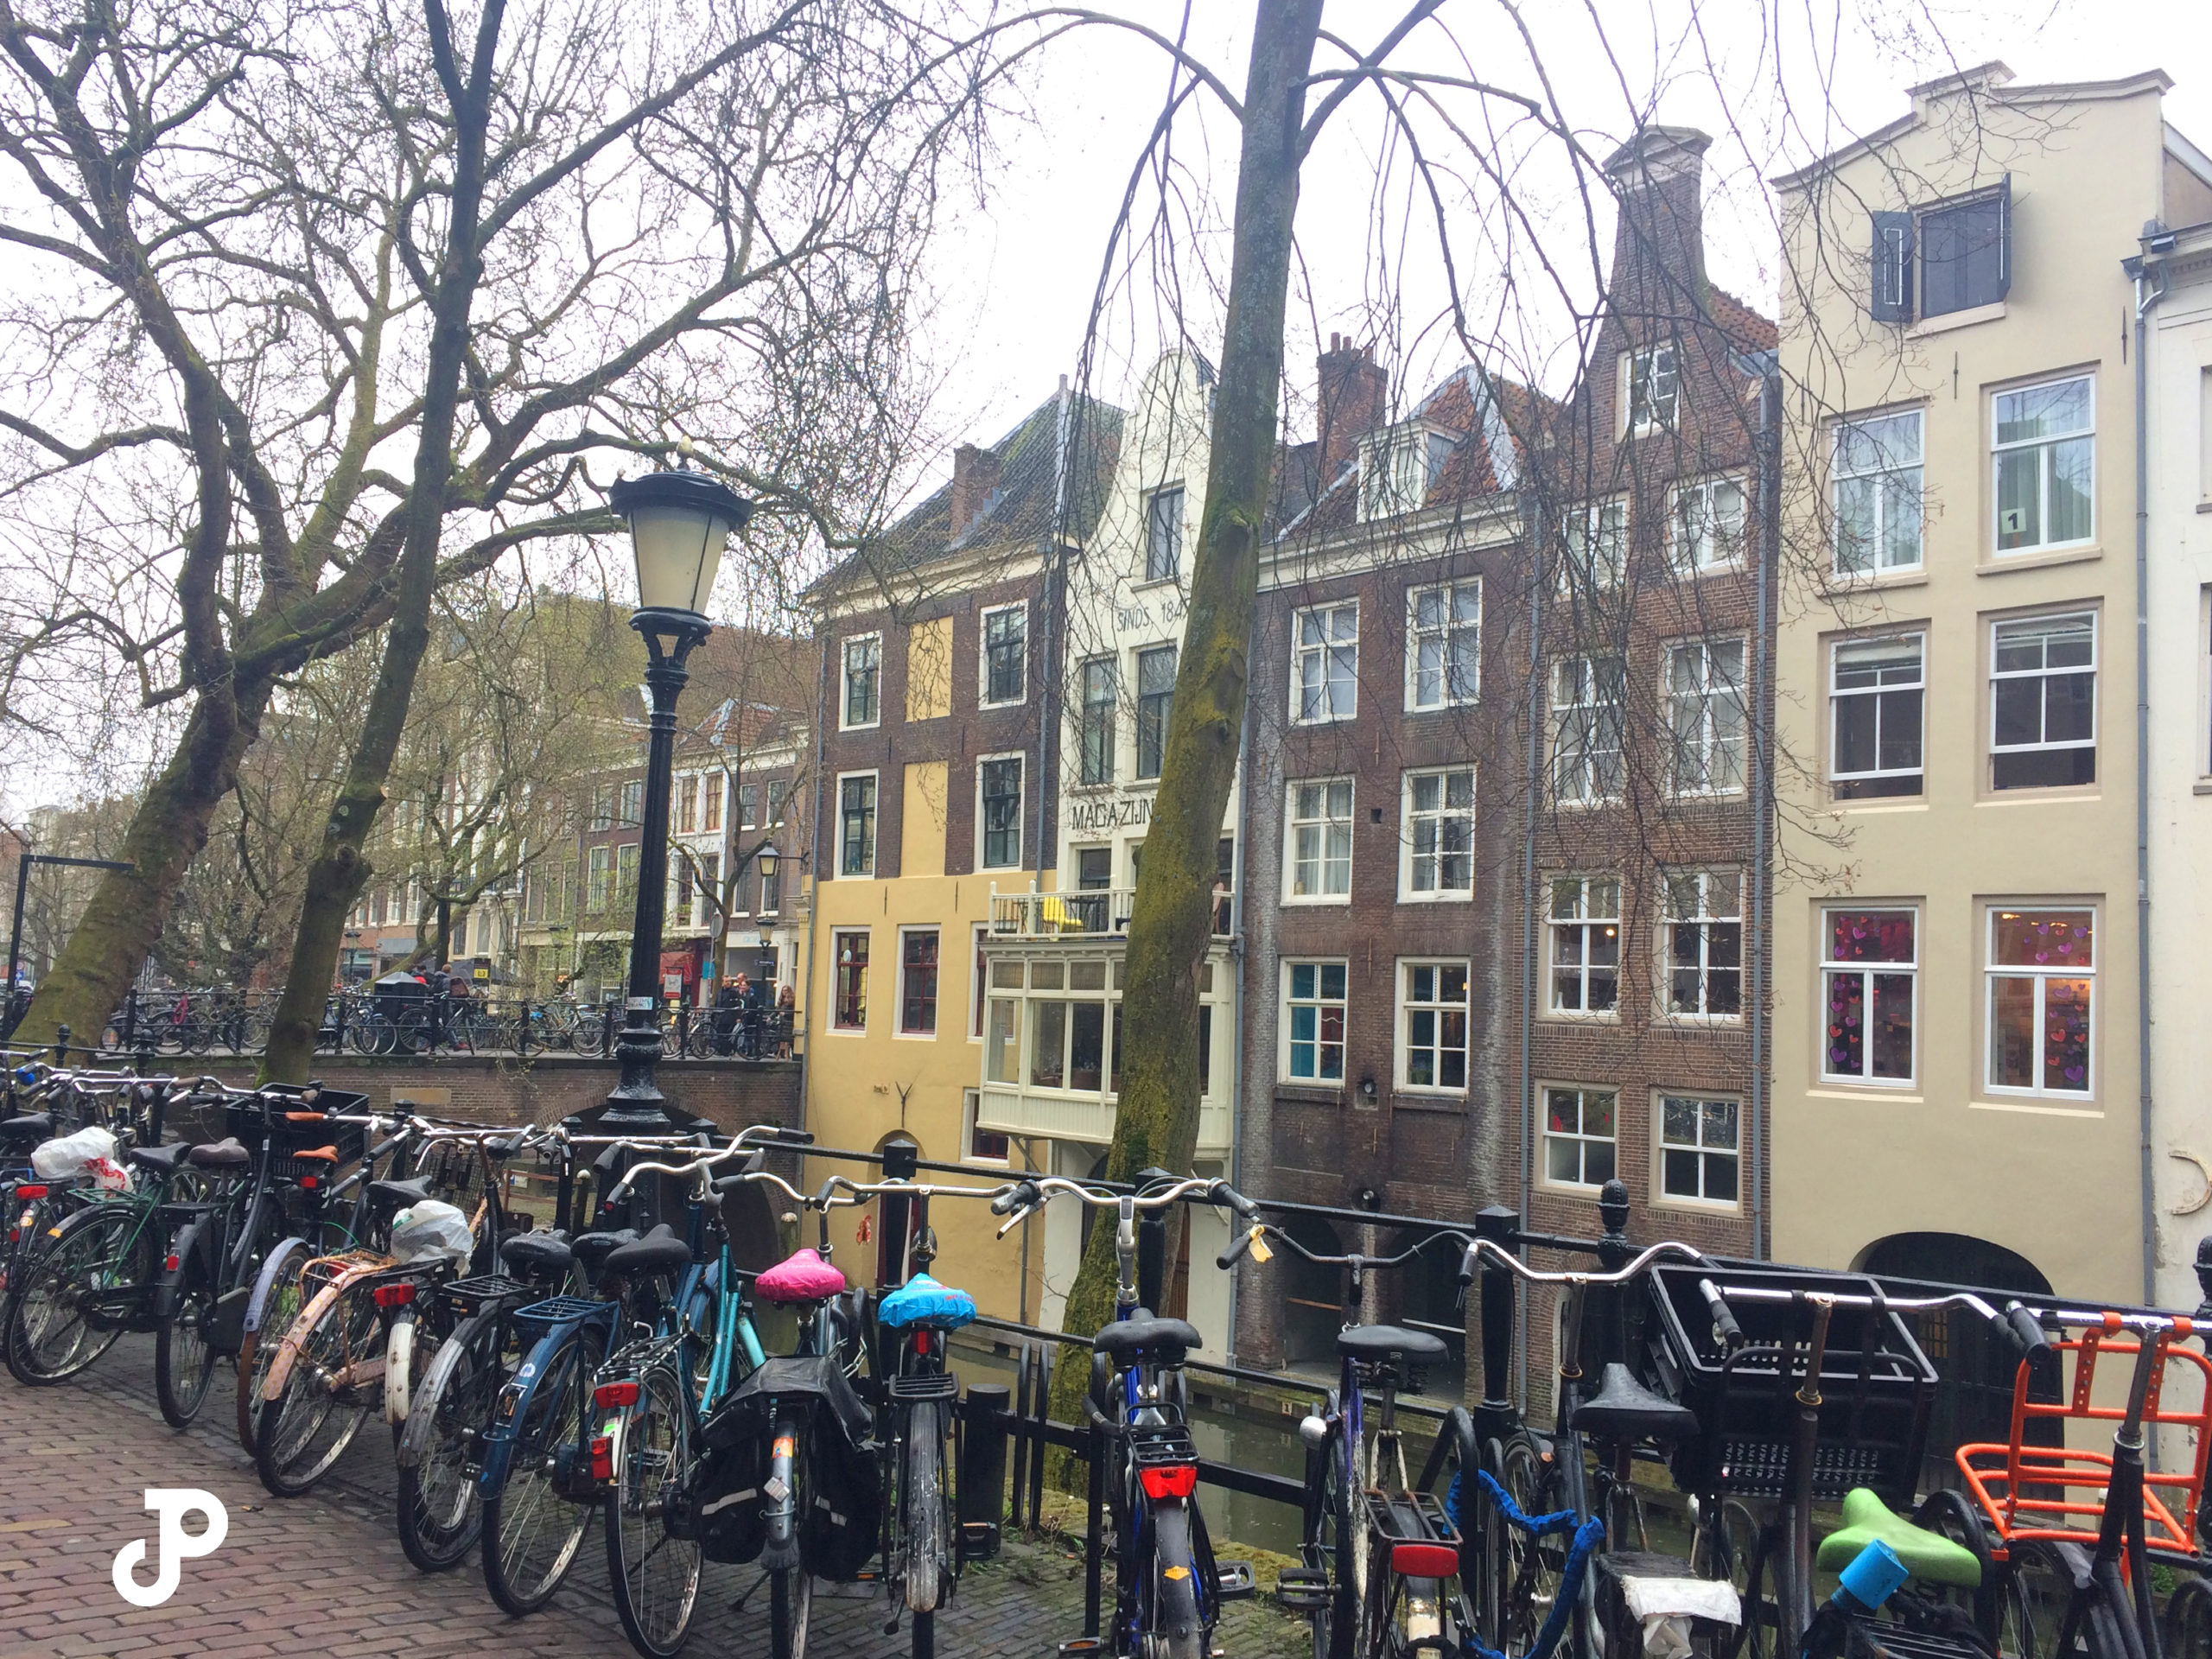 a line of bicycles along a canal with iconic narrow Dutch buildings in the background